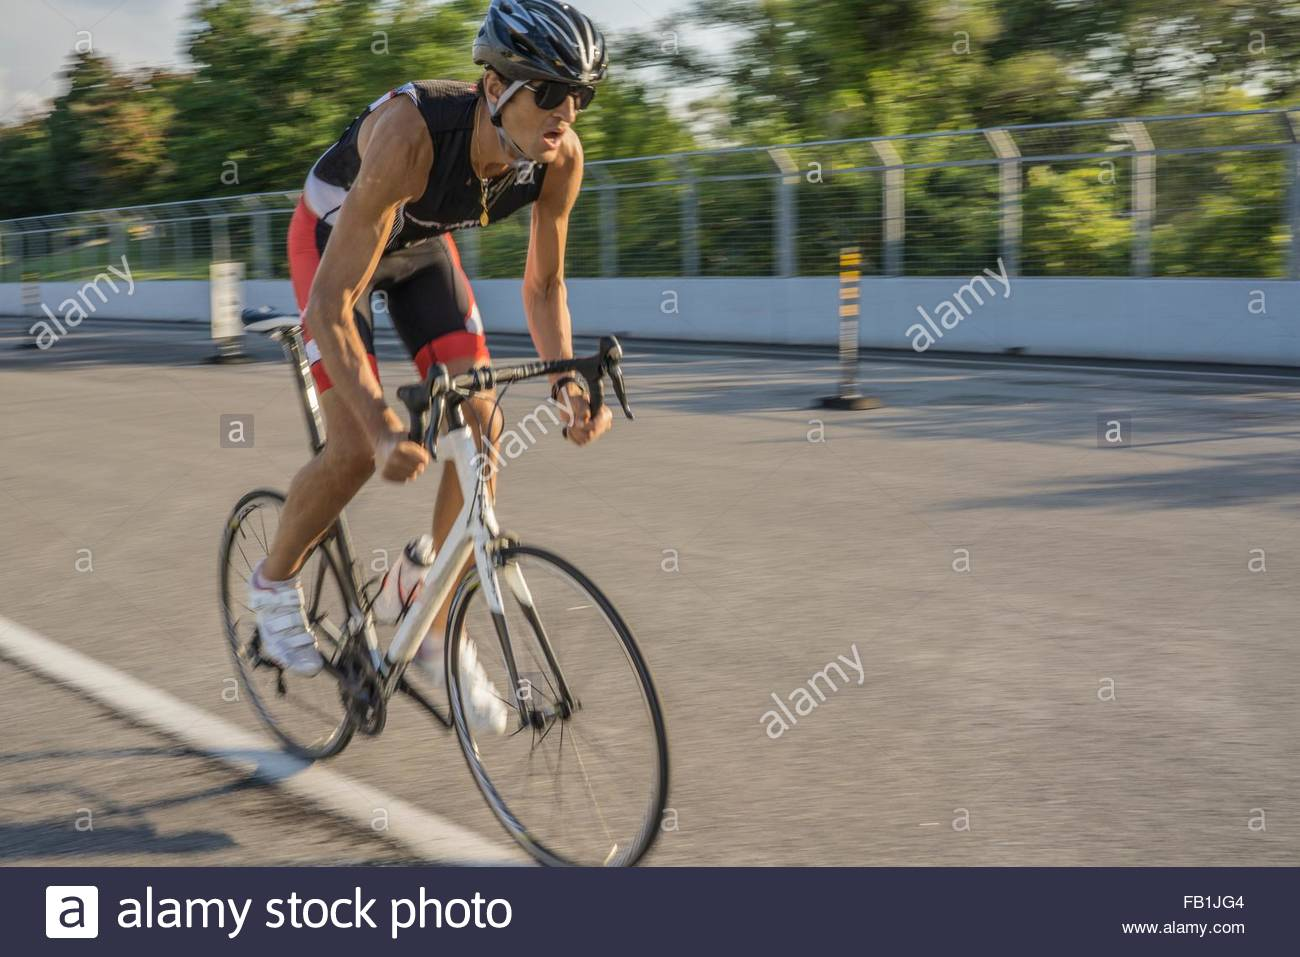 Mid adult man cycling on mountain bike on race track, burred motion, Montreal, Quebec, Canada - Stock Image